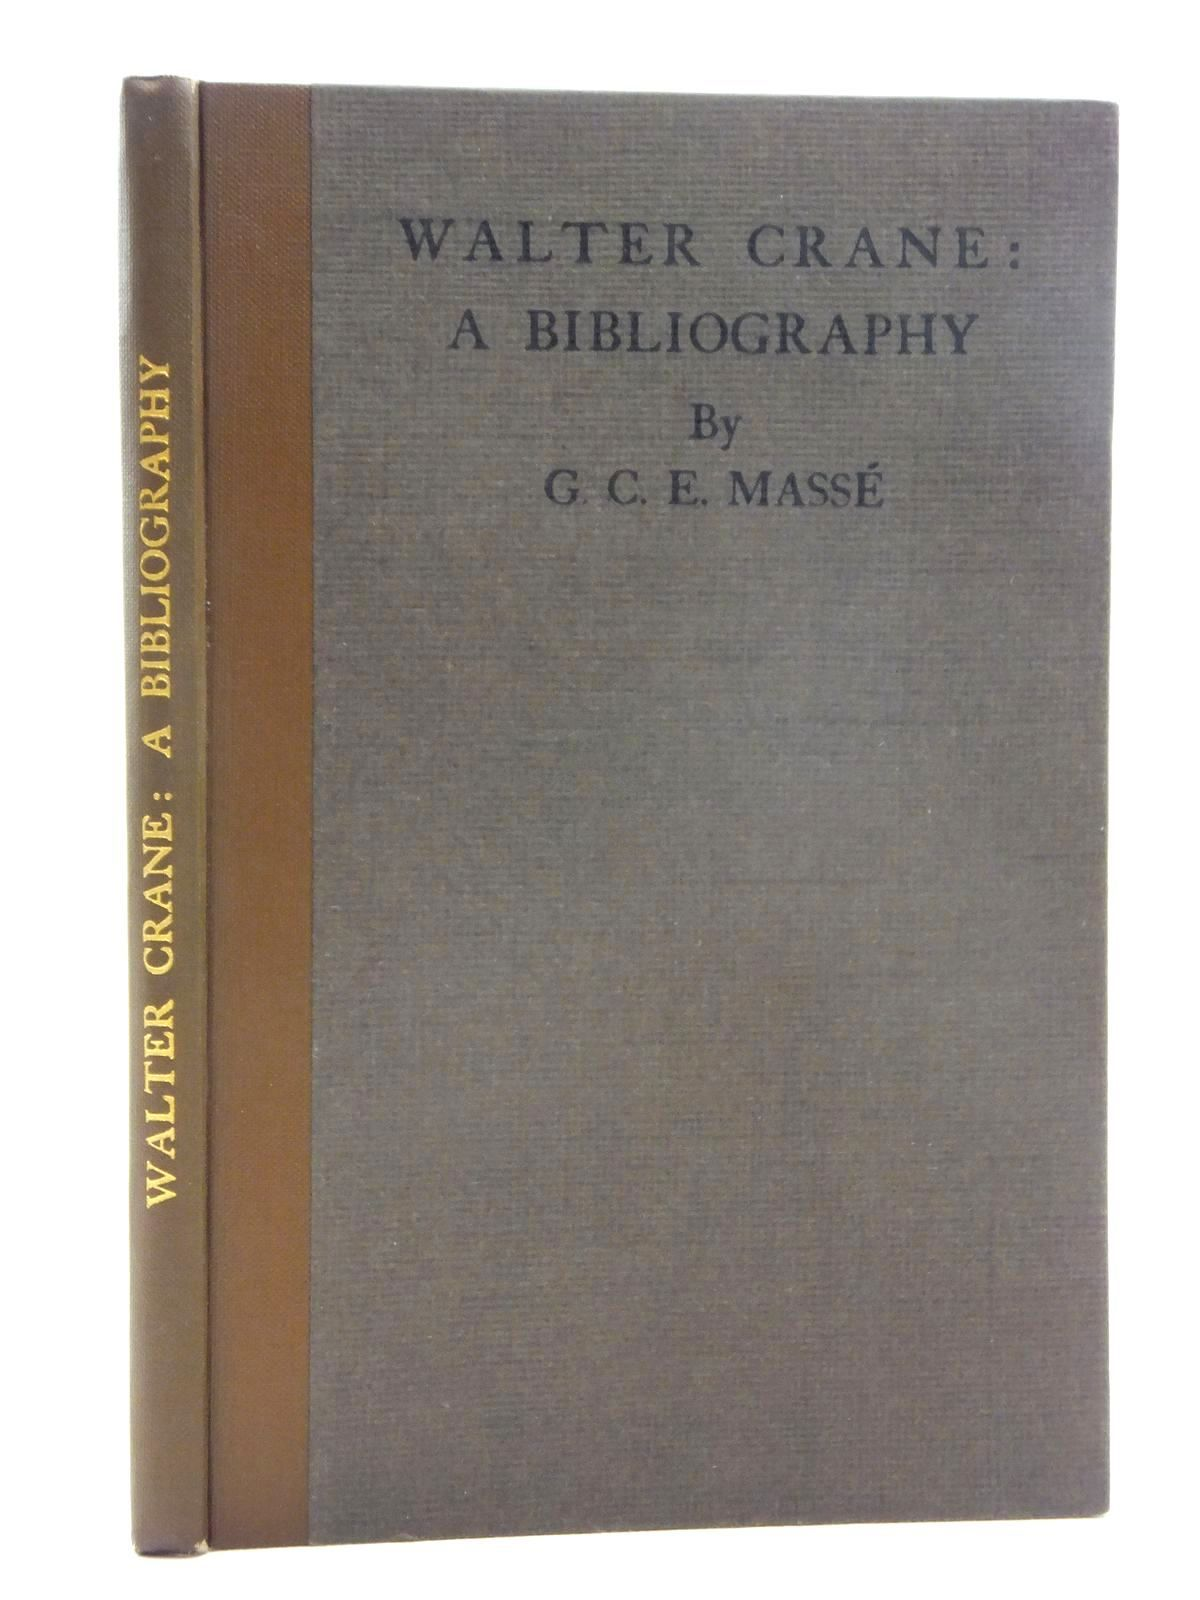 Photo of WALTER CRANE: A BIBLIOGRAPHY written by Masse, G.C.E. published by Chelsea Publishing Co. (STOCK CODE: 1316984)  for sale by Stella & Rose's Books